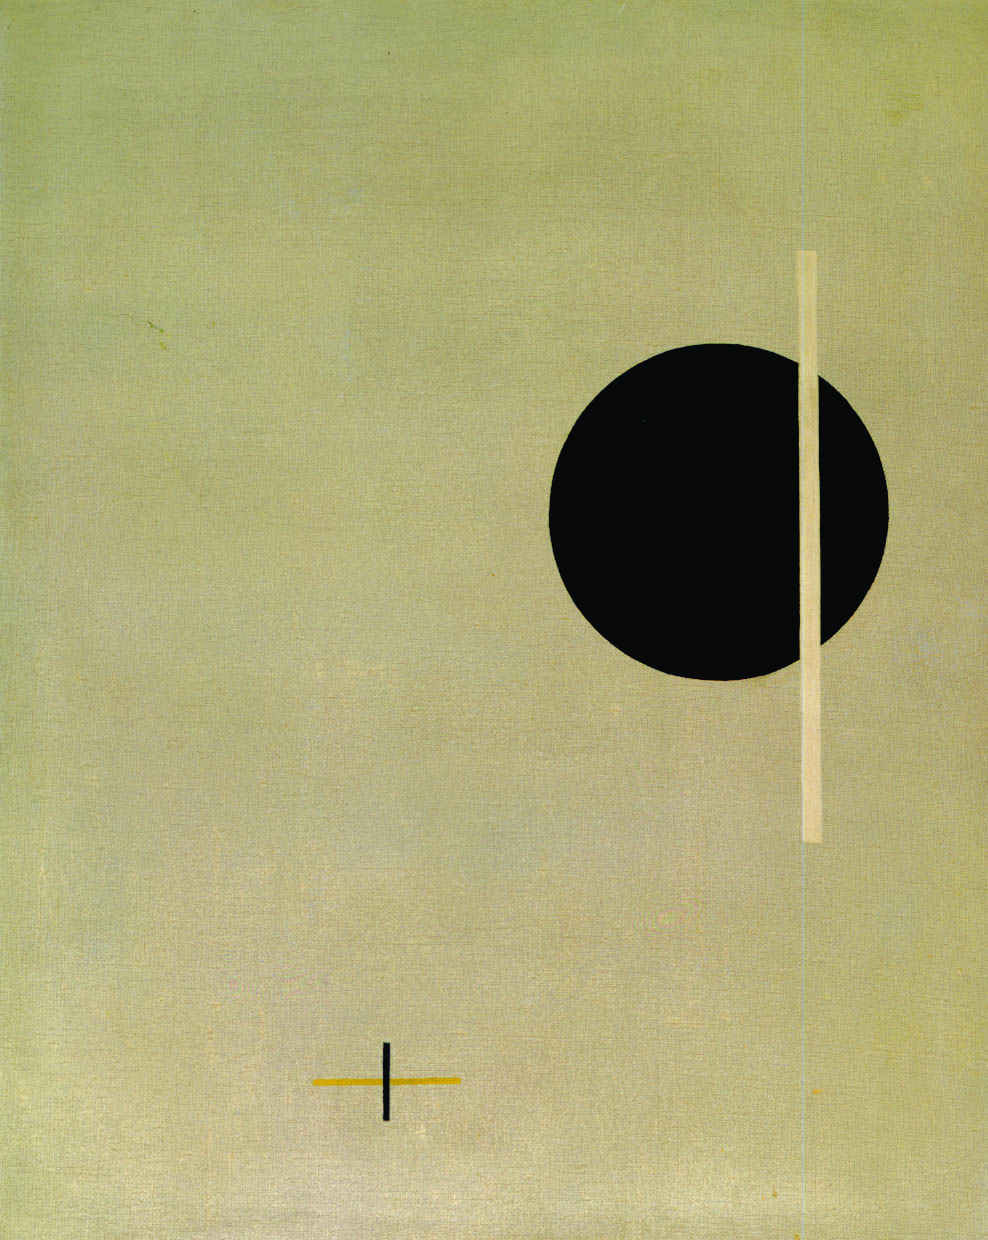 László Moholy-Nagy, QXXI​, 1923. Oil on canvas, 37 x 30 in. Gift of Silvia Pizitz, 1966